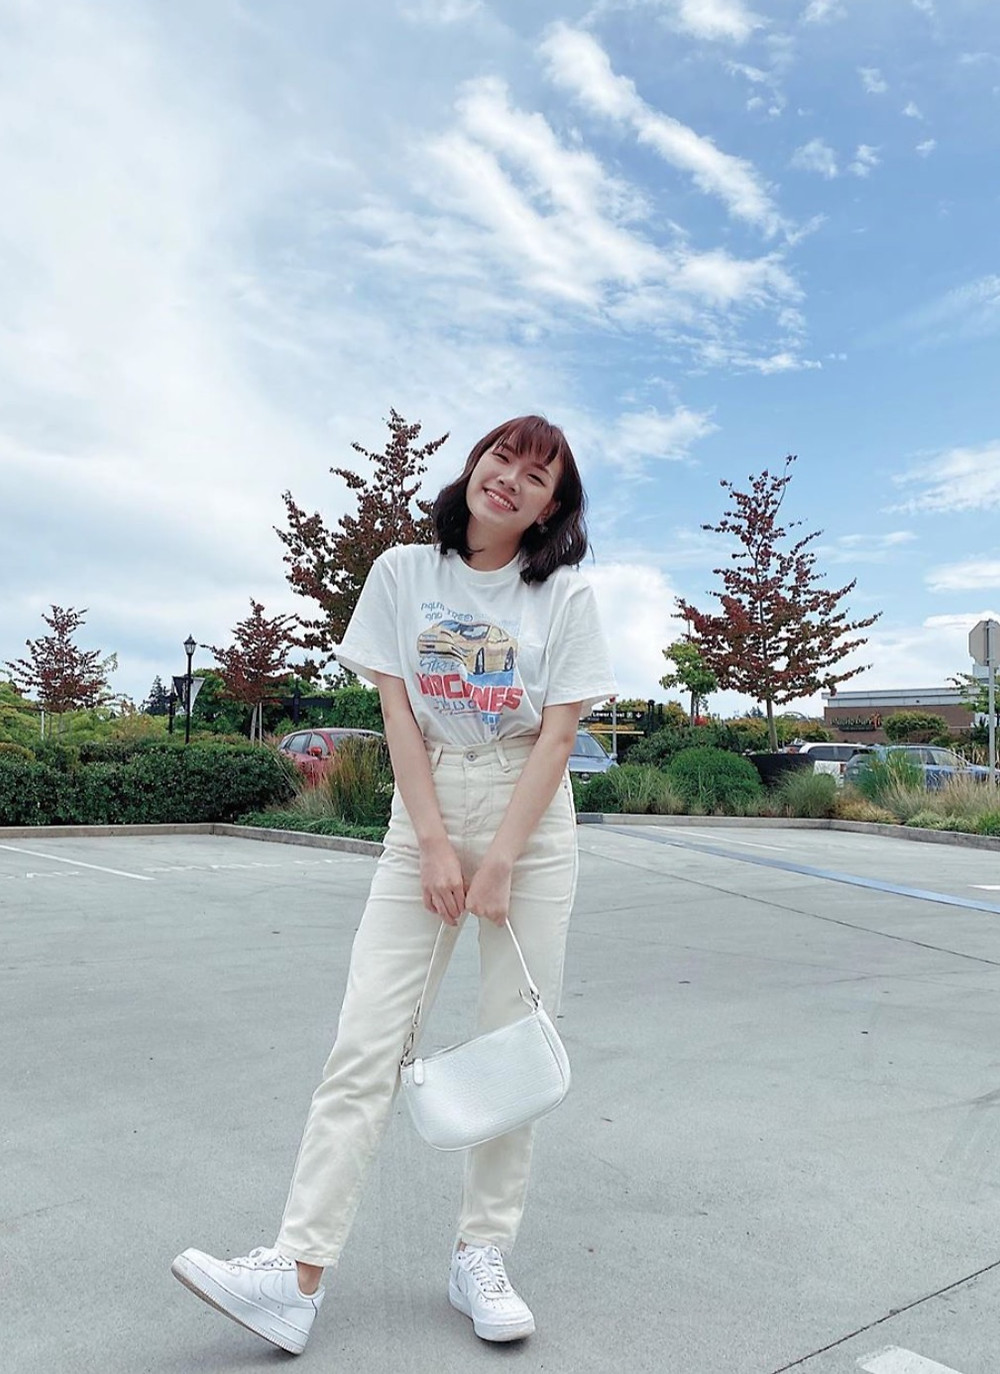 White summer outfit : Graphic tee, jeans, sneakers, purse, by build_a_brina, RollingBear Travels blog.